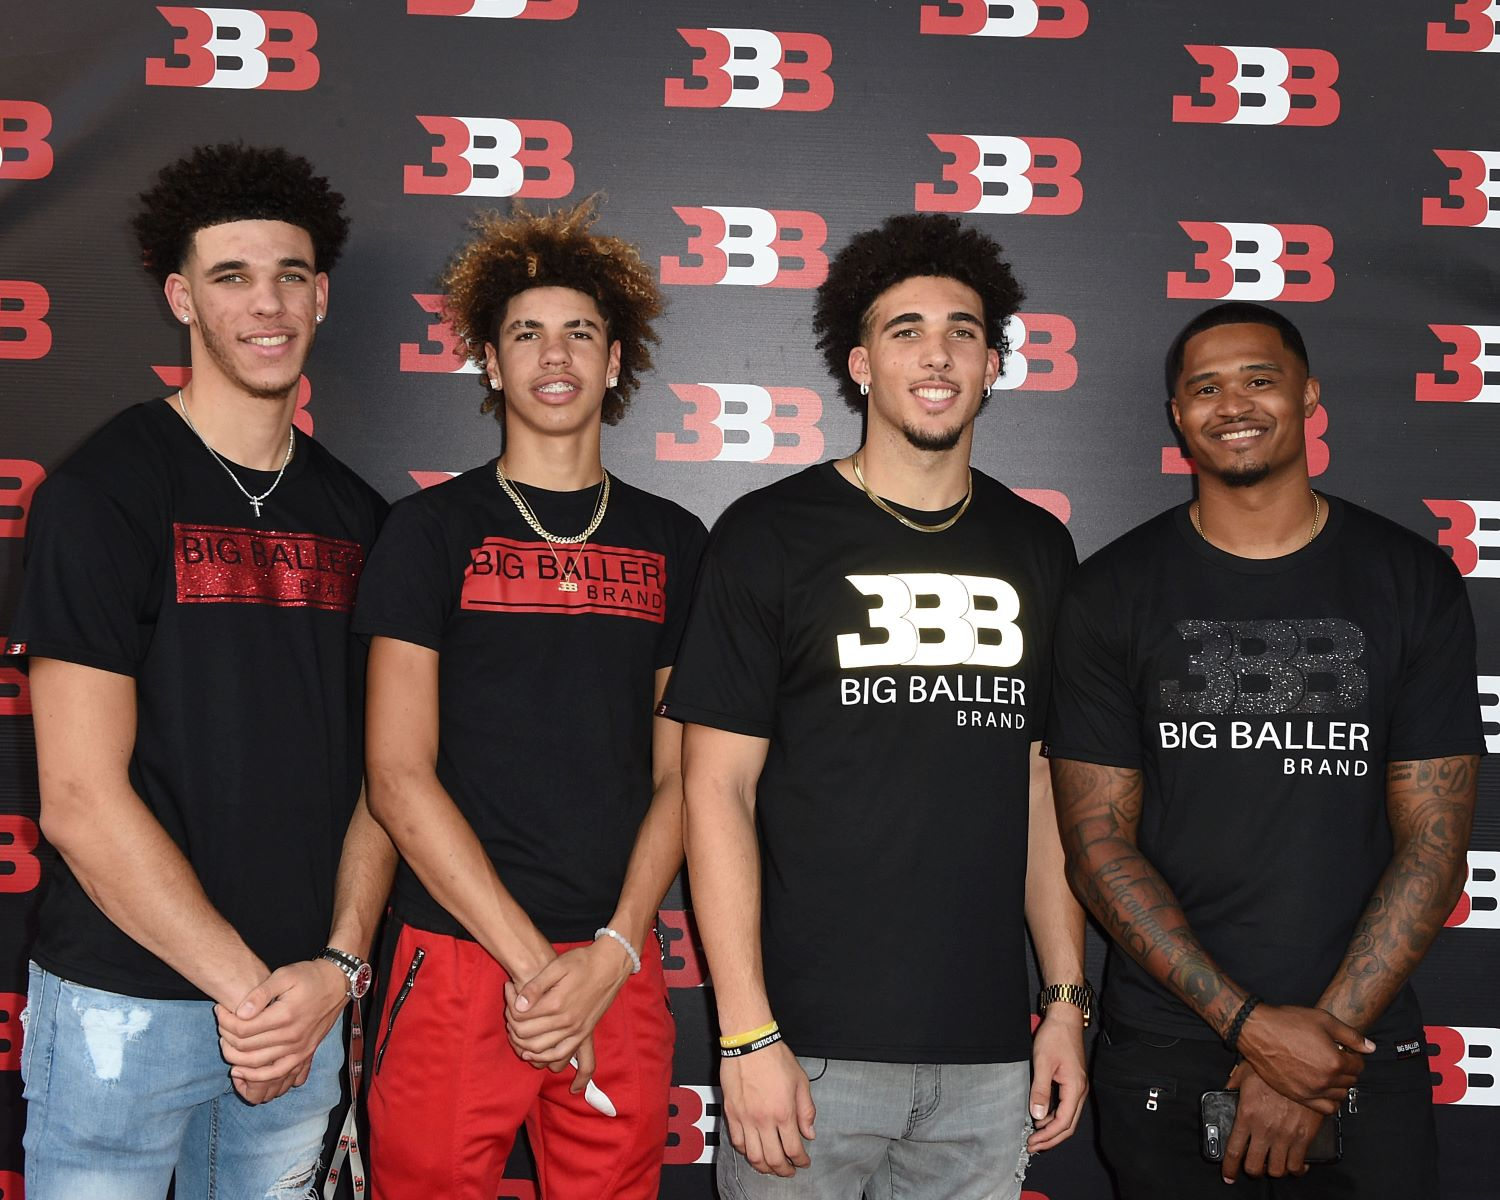 How Many Ball Brothers Are There?